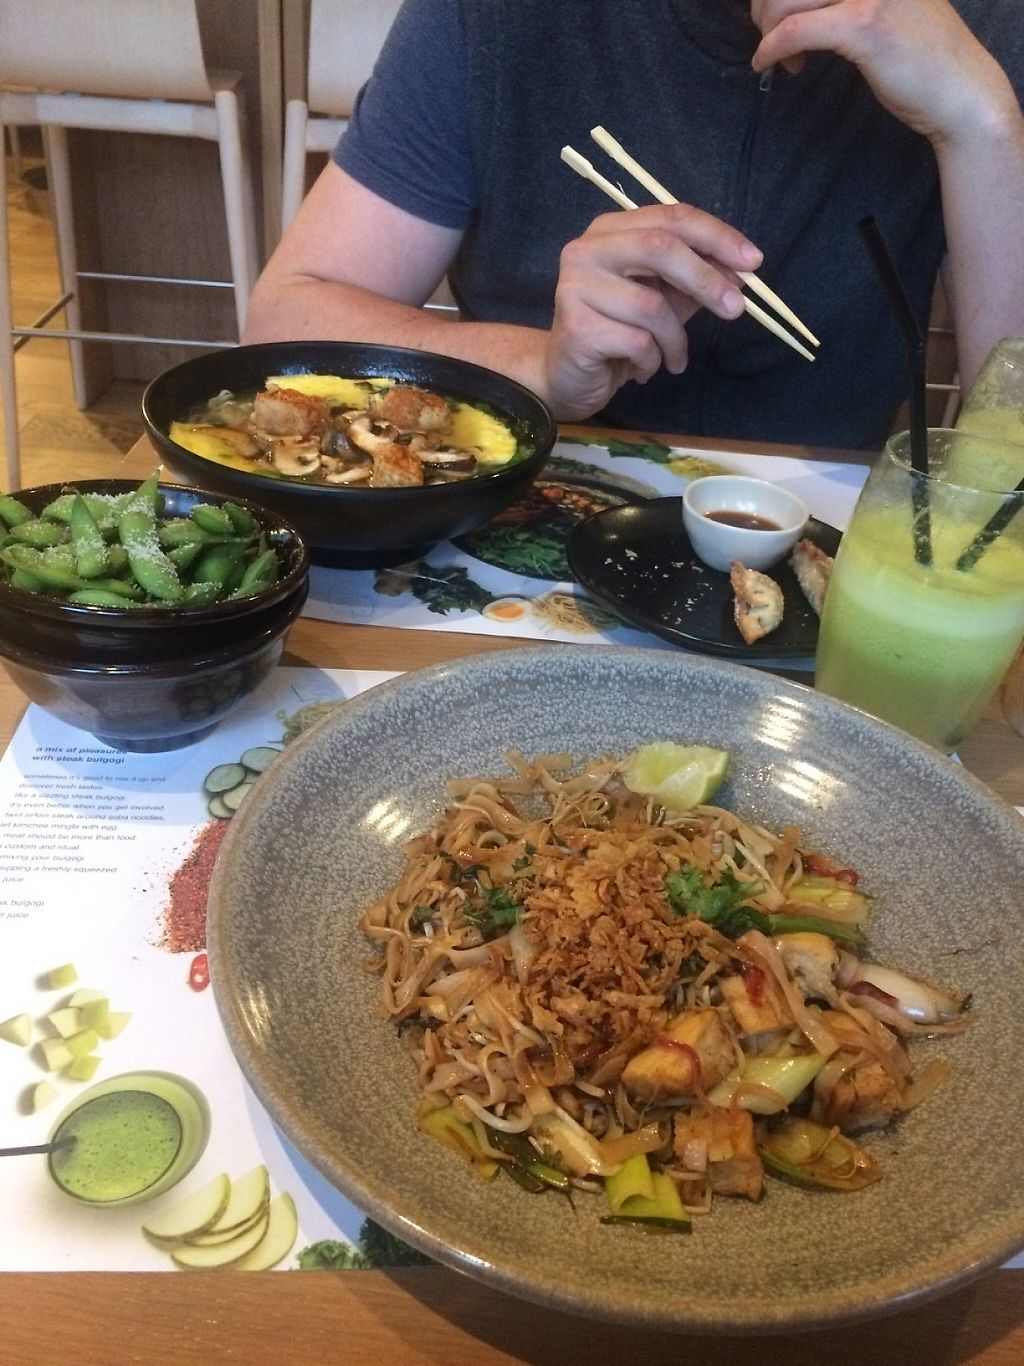 """Photo of Wagamama  by <a href=""""/members/profile/Marin100"""">Marin100</a> <br/>food and fresh juice <br/> May 20, 2017  - <a href='/contact/abuse/image/69590/260695'>Report</a>"""